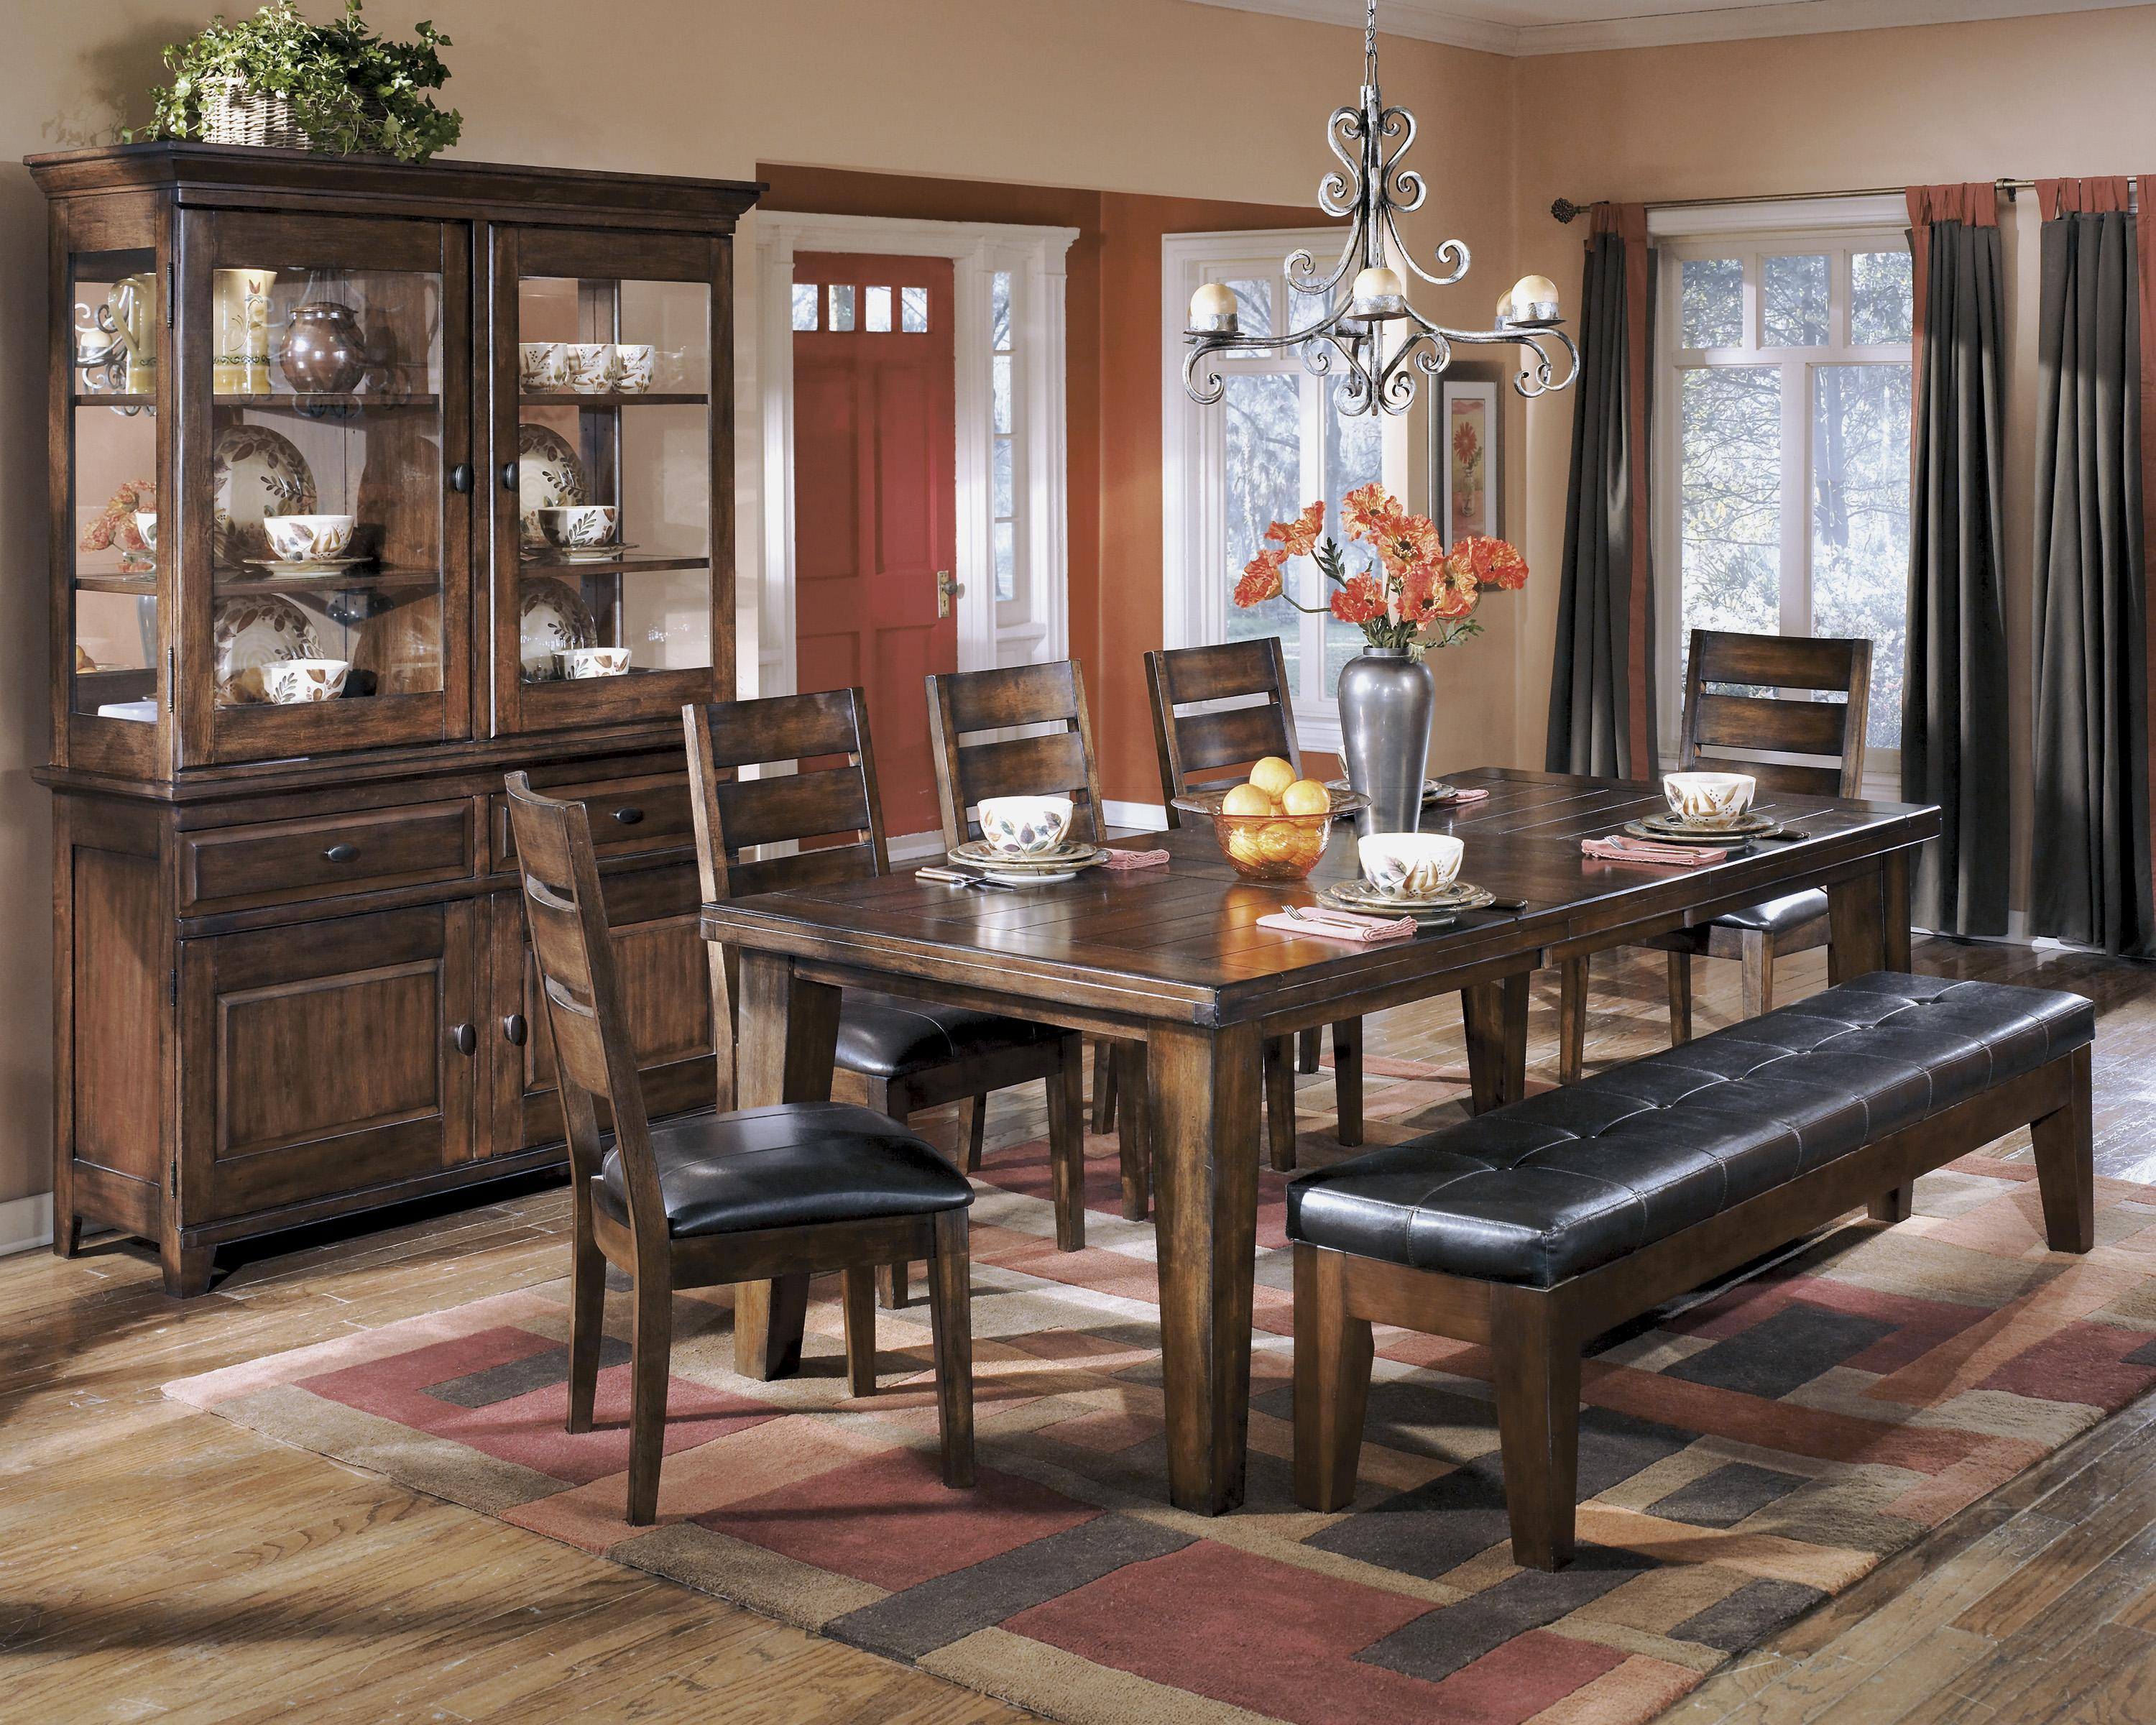 Signature Design by Ashley Larchmont Casual Dining Room Group - Item Number: D442 Dining Room Group 6